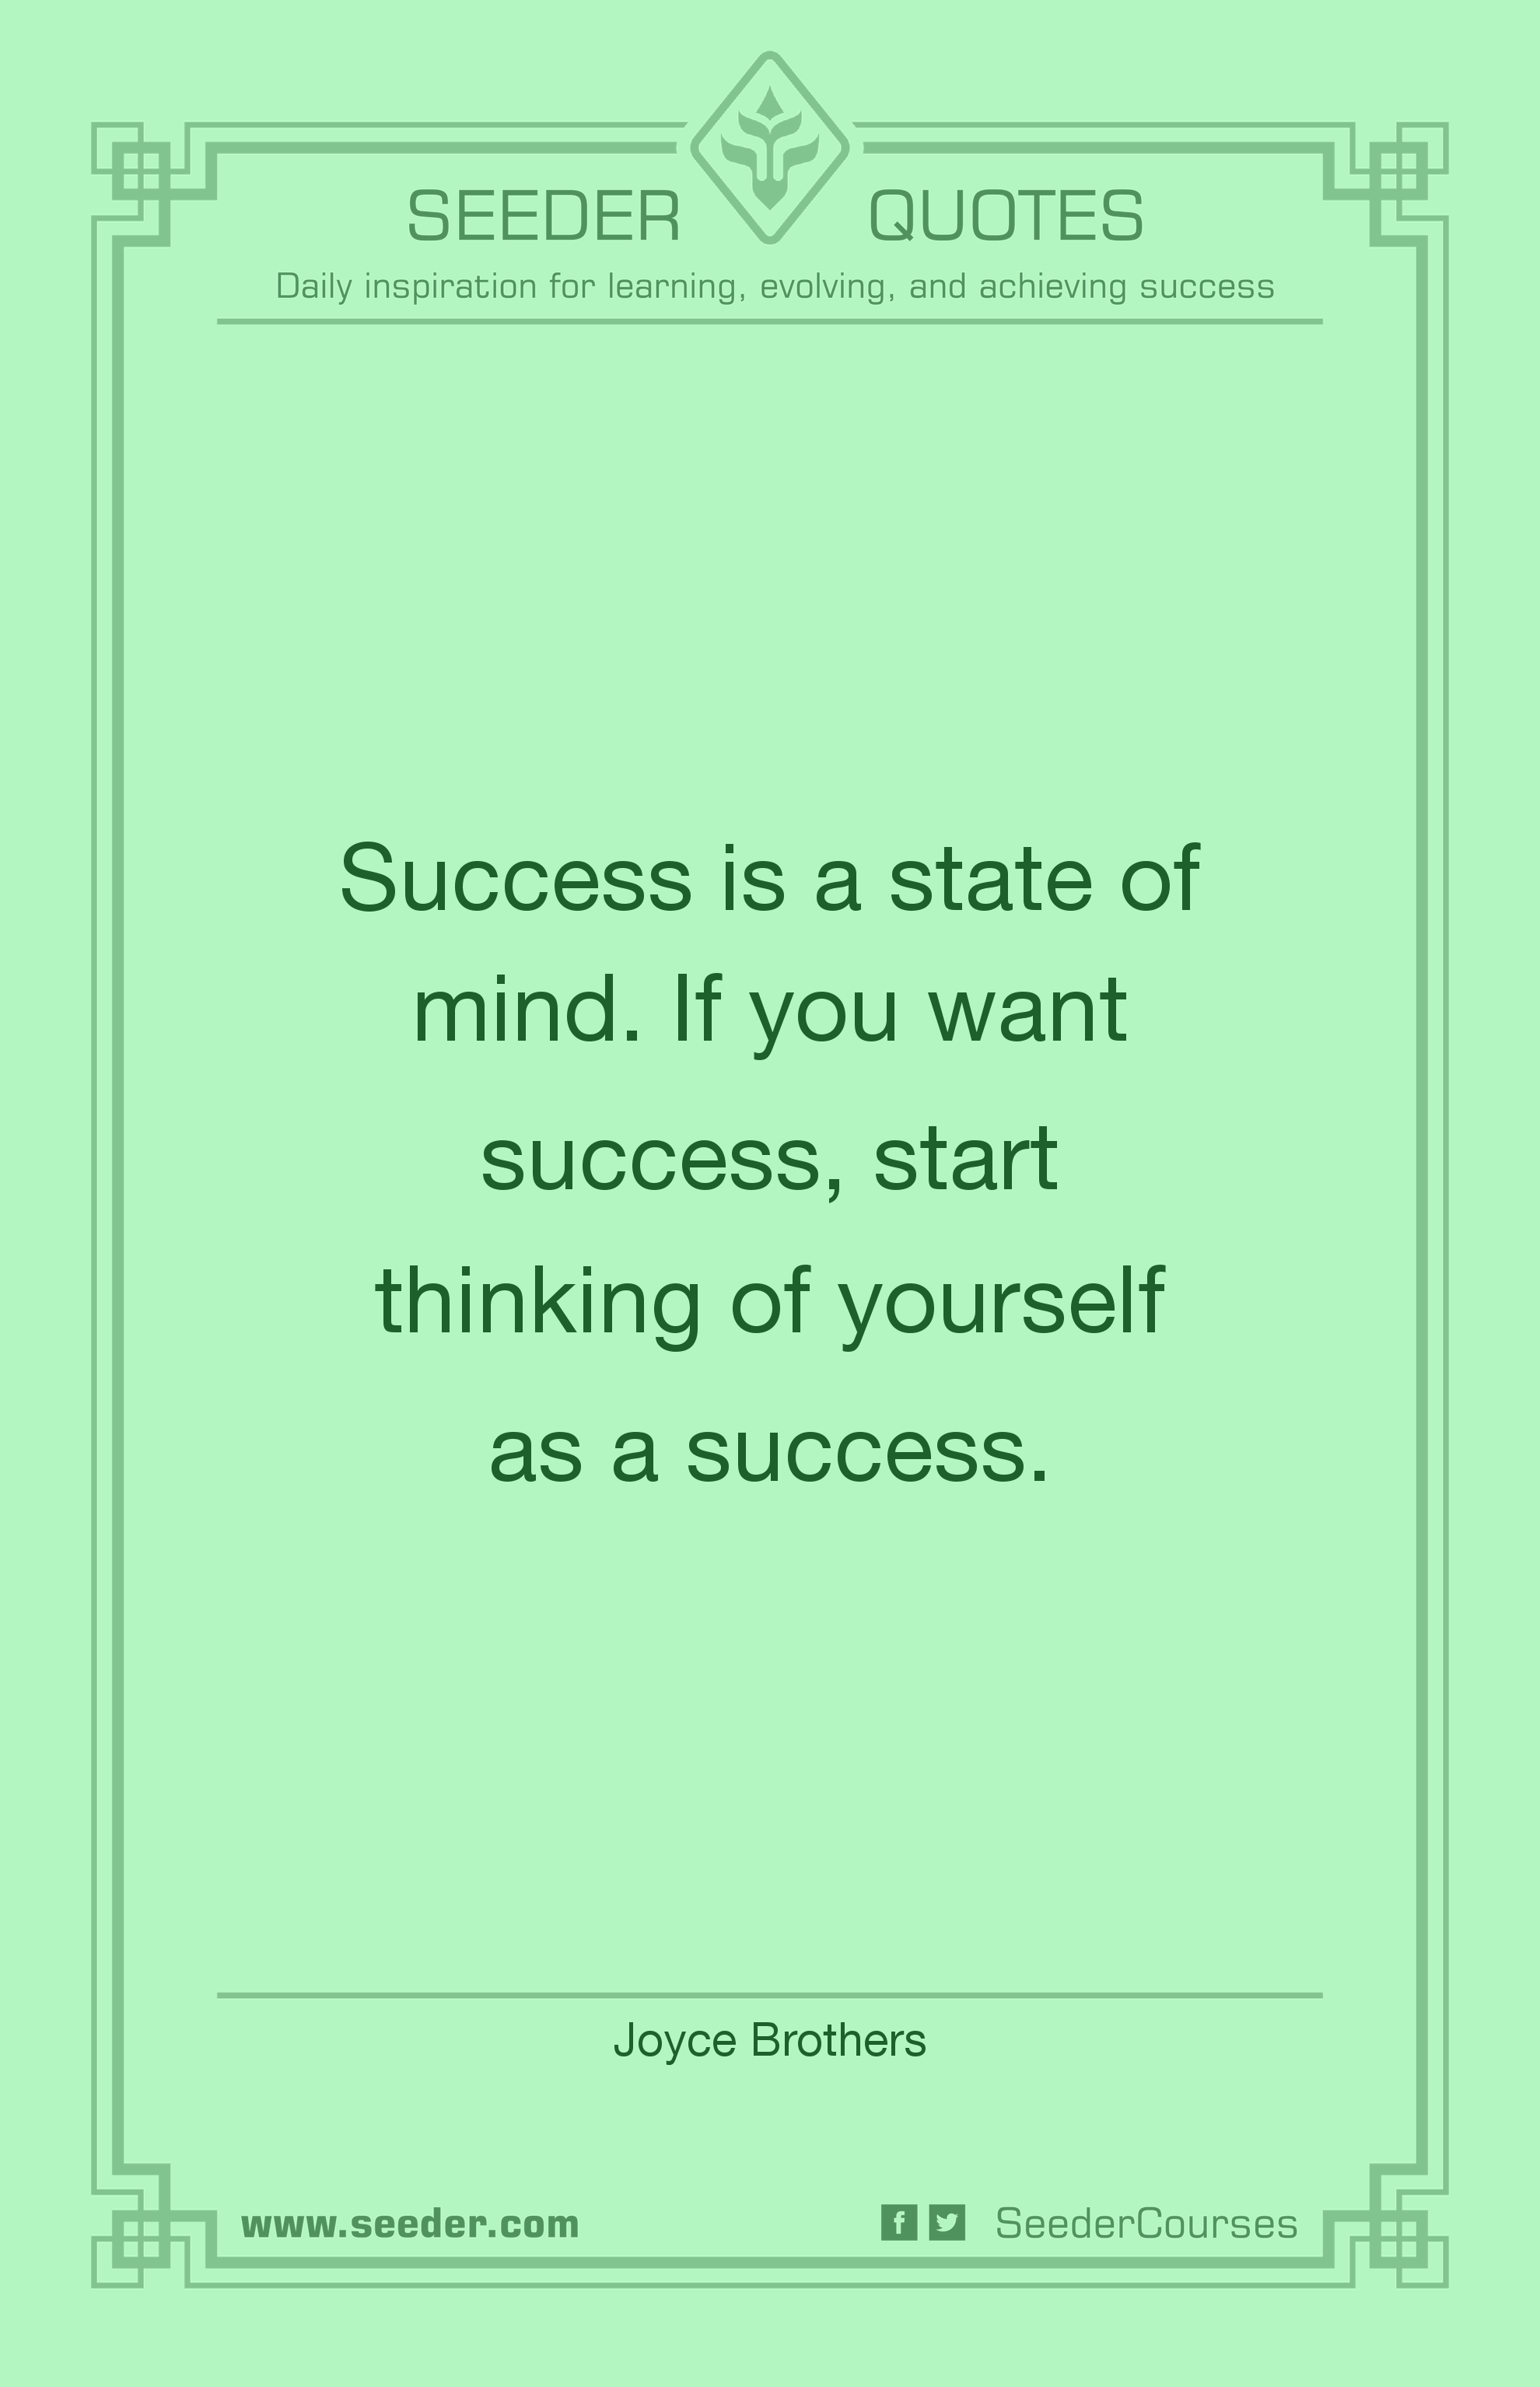 Success is a state of mind. If you want success, start thinking of yourself as a success. - Joyce Brothers | http://seeder.com